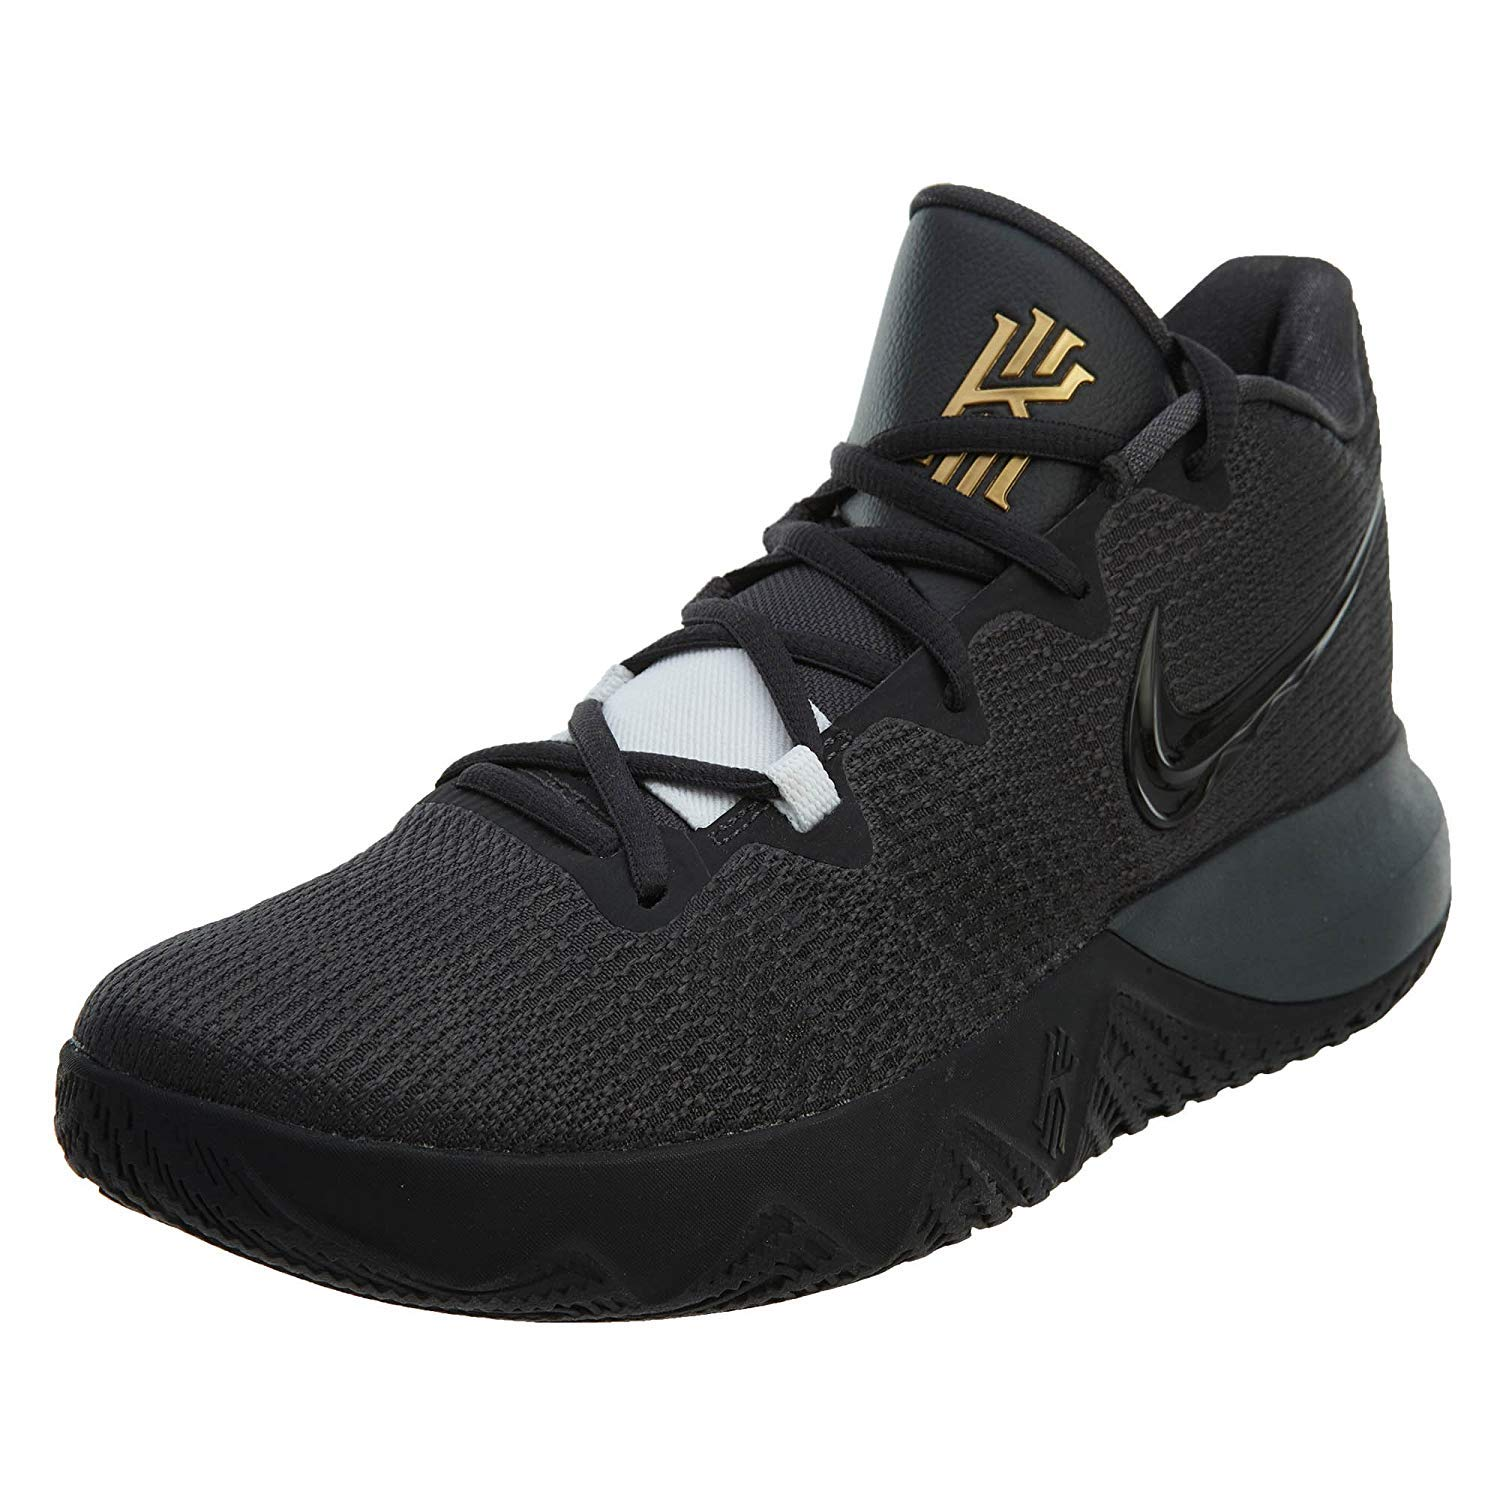 Nike Men's Kyrie Flytrap Anthracite/Black/Metallic Gold Size 9.5 M US